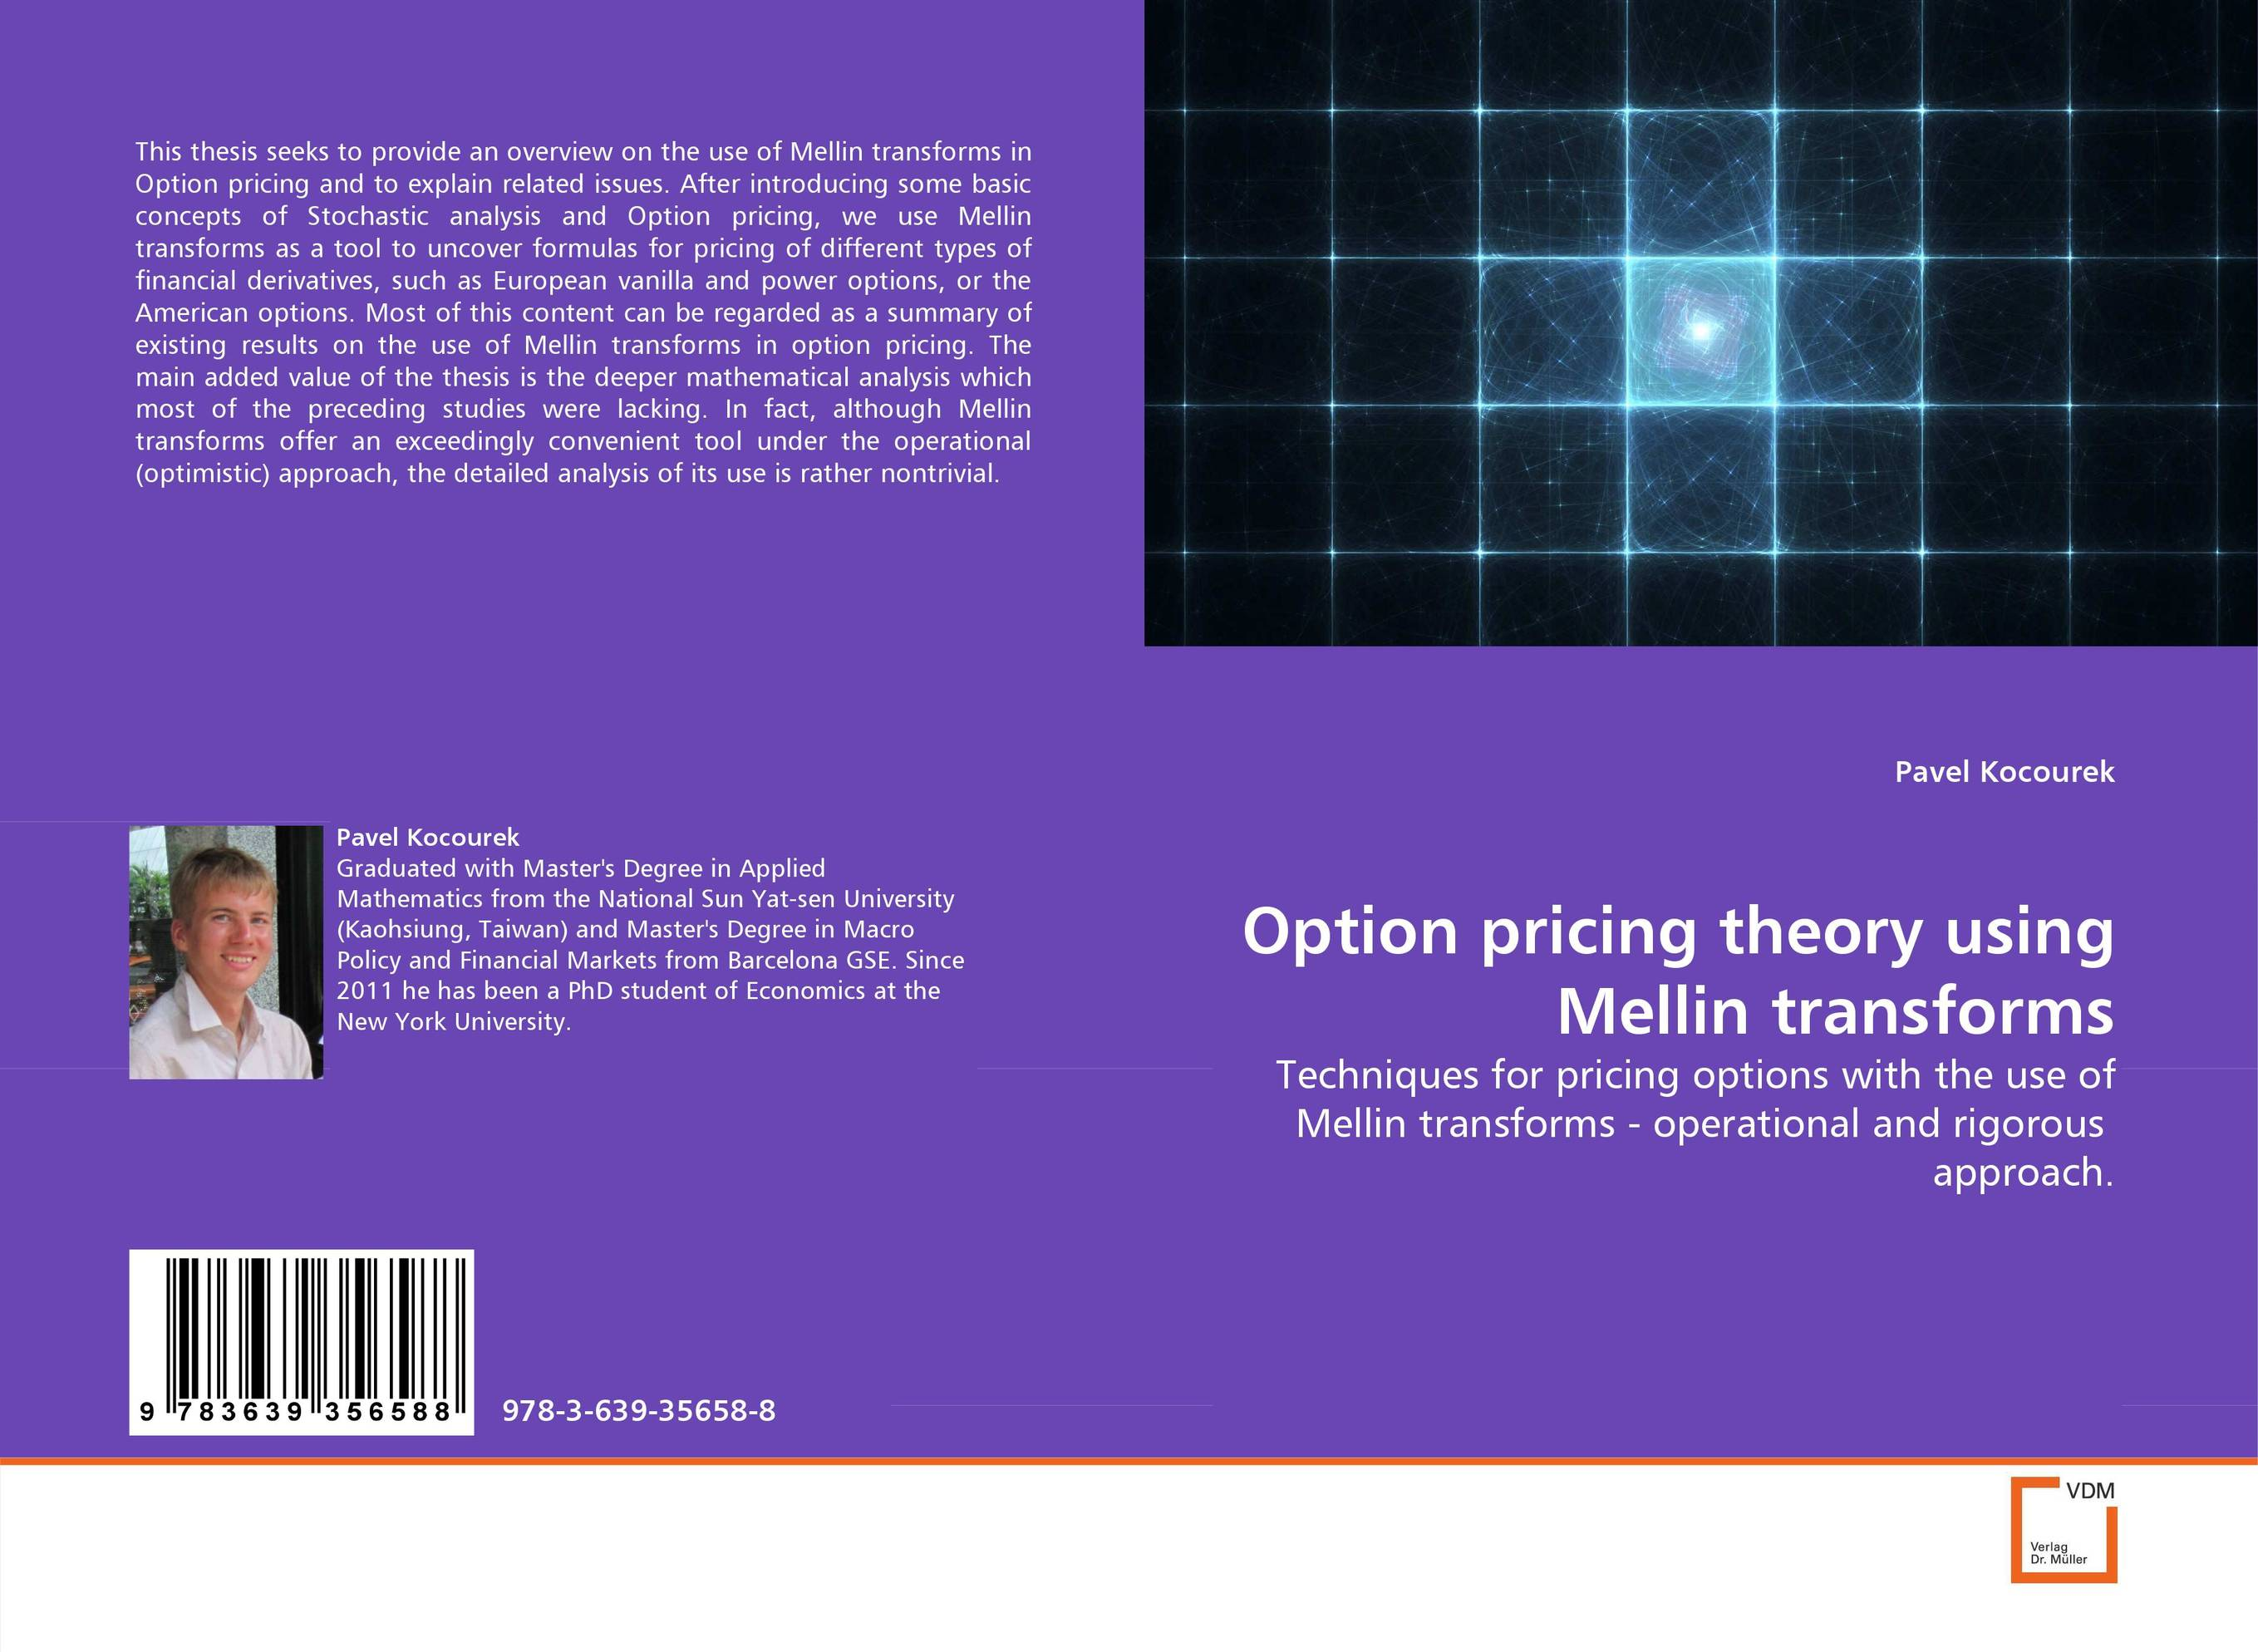 Option pricing theory using Mellin transforms